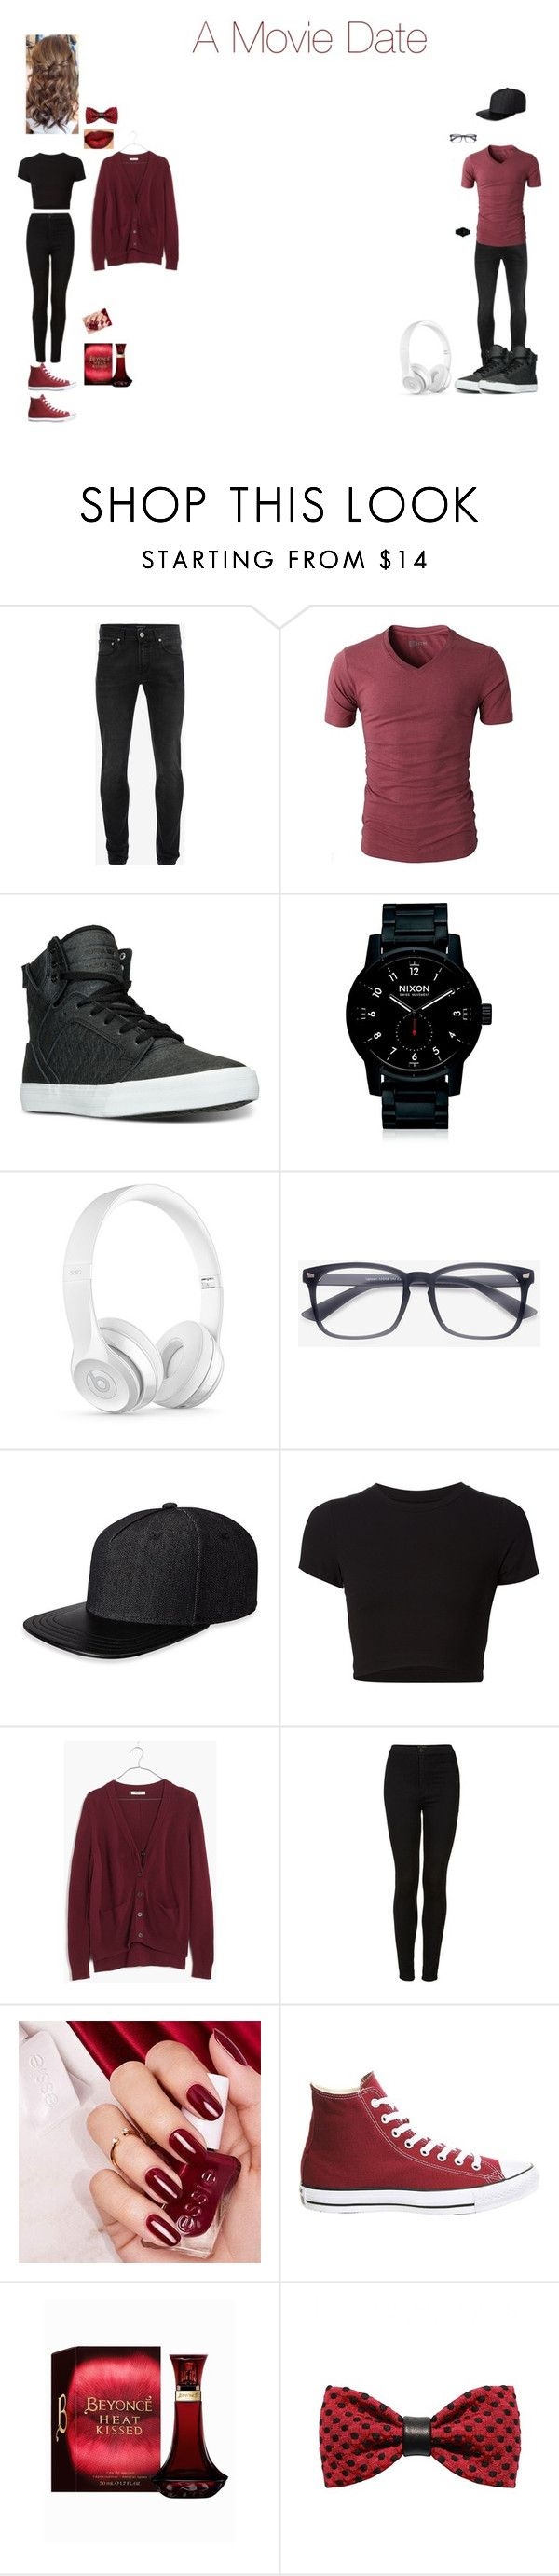 """A Movie Date"" by cadie605 ❤ liked on Polyvore featuring Alexander McQueen, Supra, Nixon, Beats by Dr. Dre, Gents, Getting Back To Square One, Madewell, Topshop and ZuZu Kim"